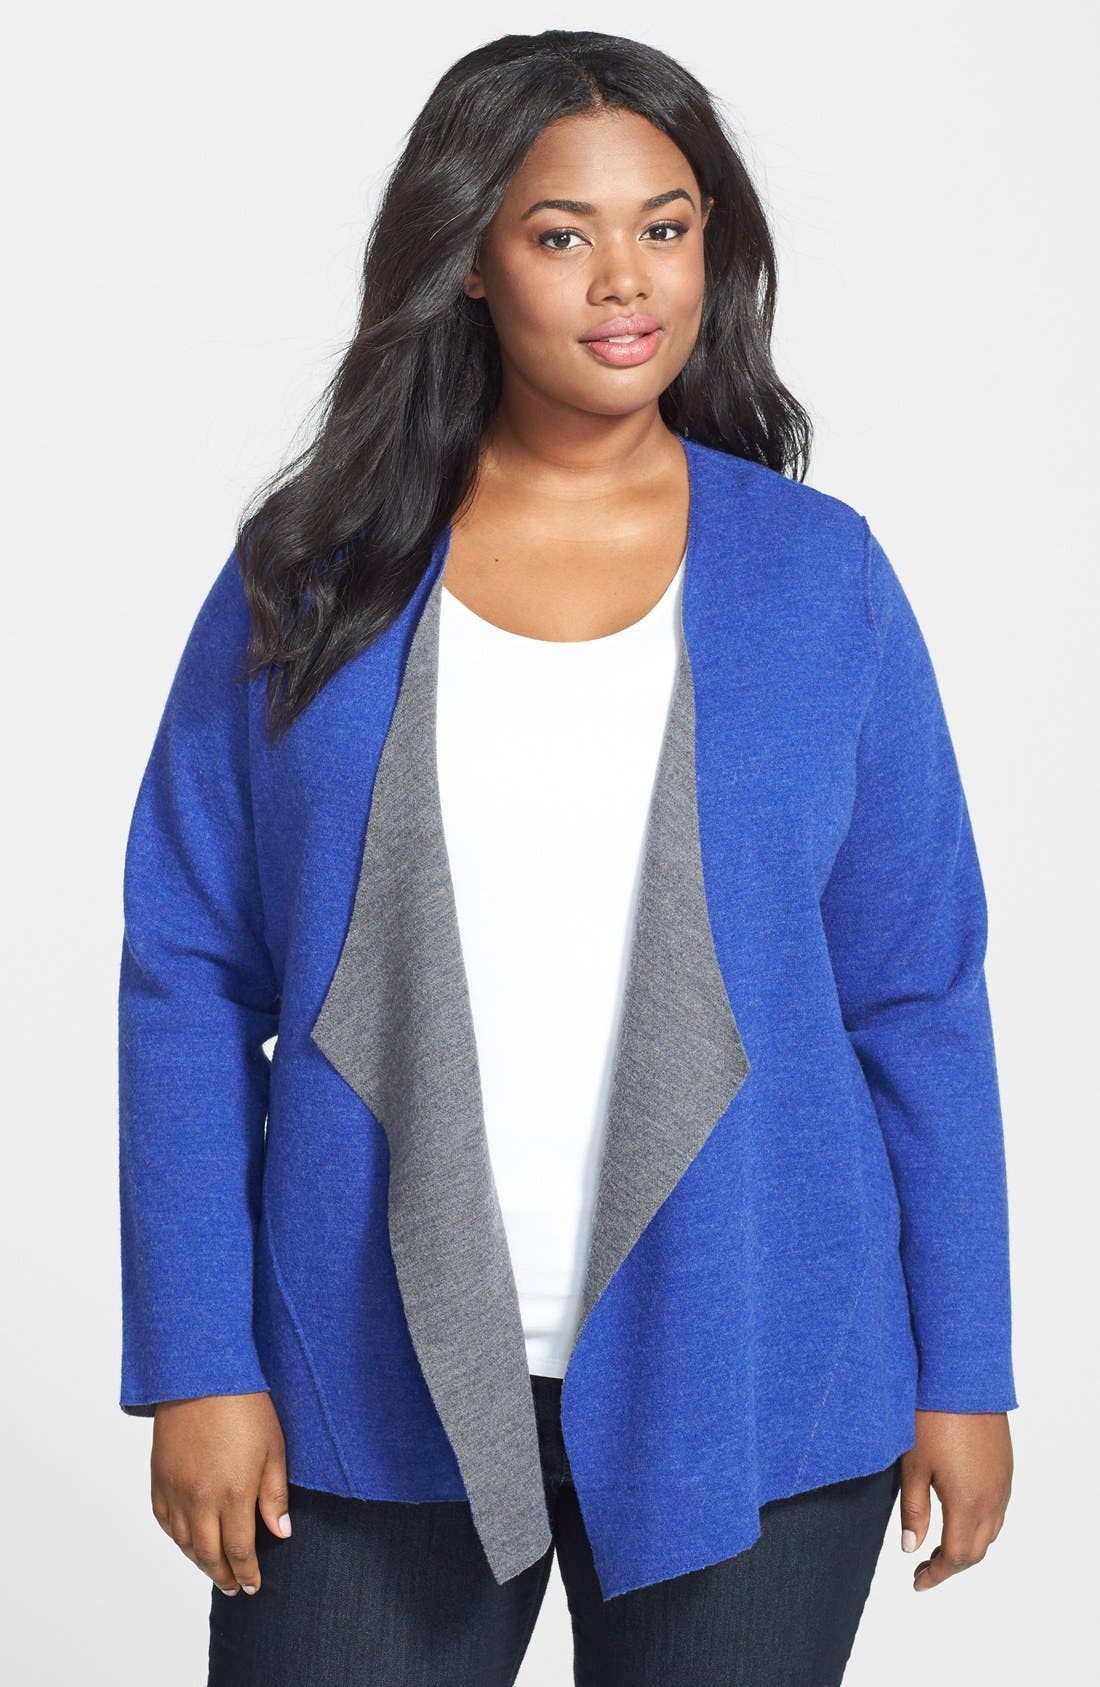 Alternate Image 1 Selected - Eileen Fisher Double Knit Merino Blend Shaped Cardigan (Plus Size)